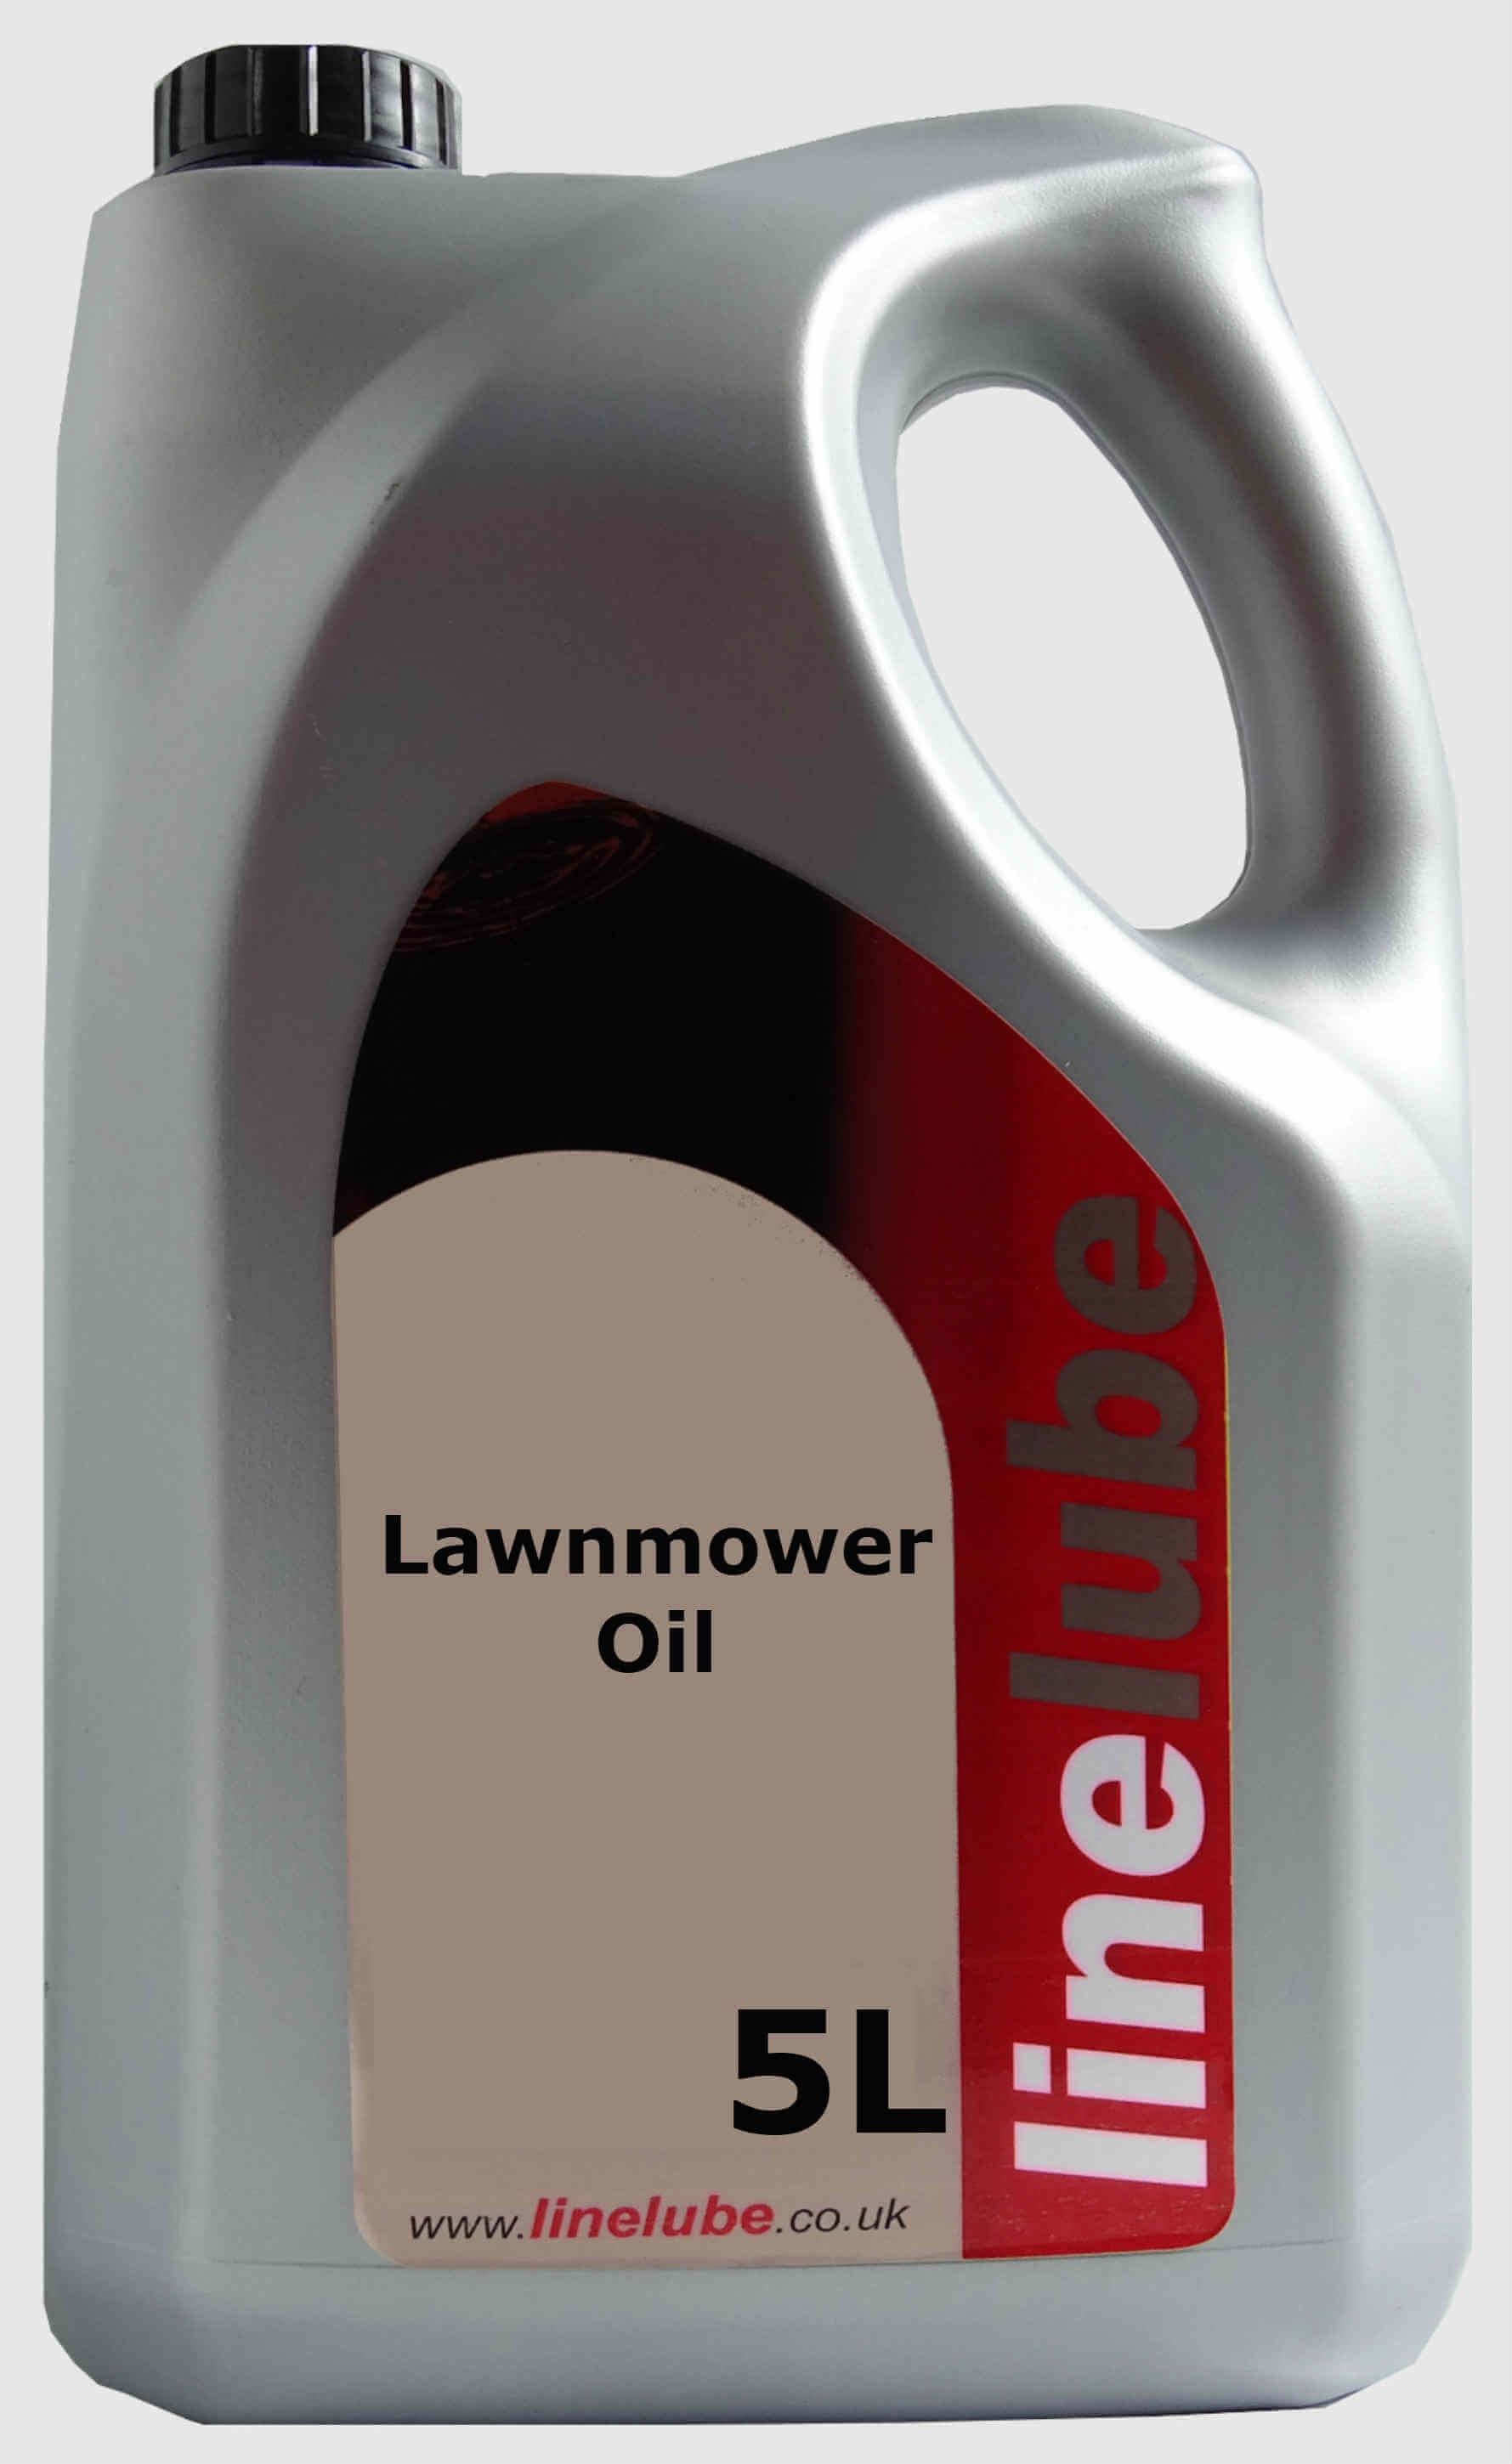 linelube Lawnmower Oil